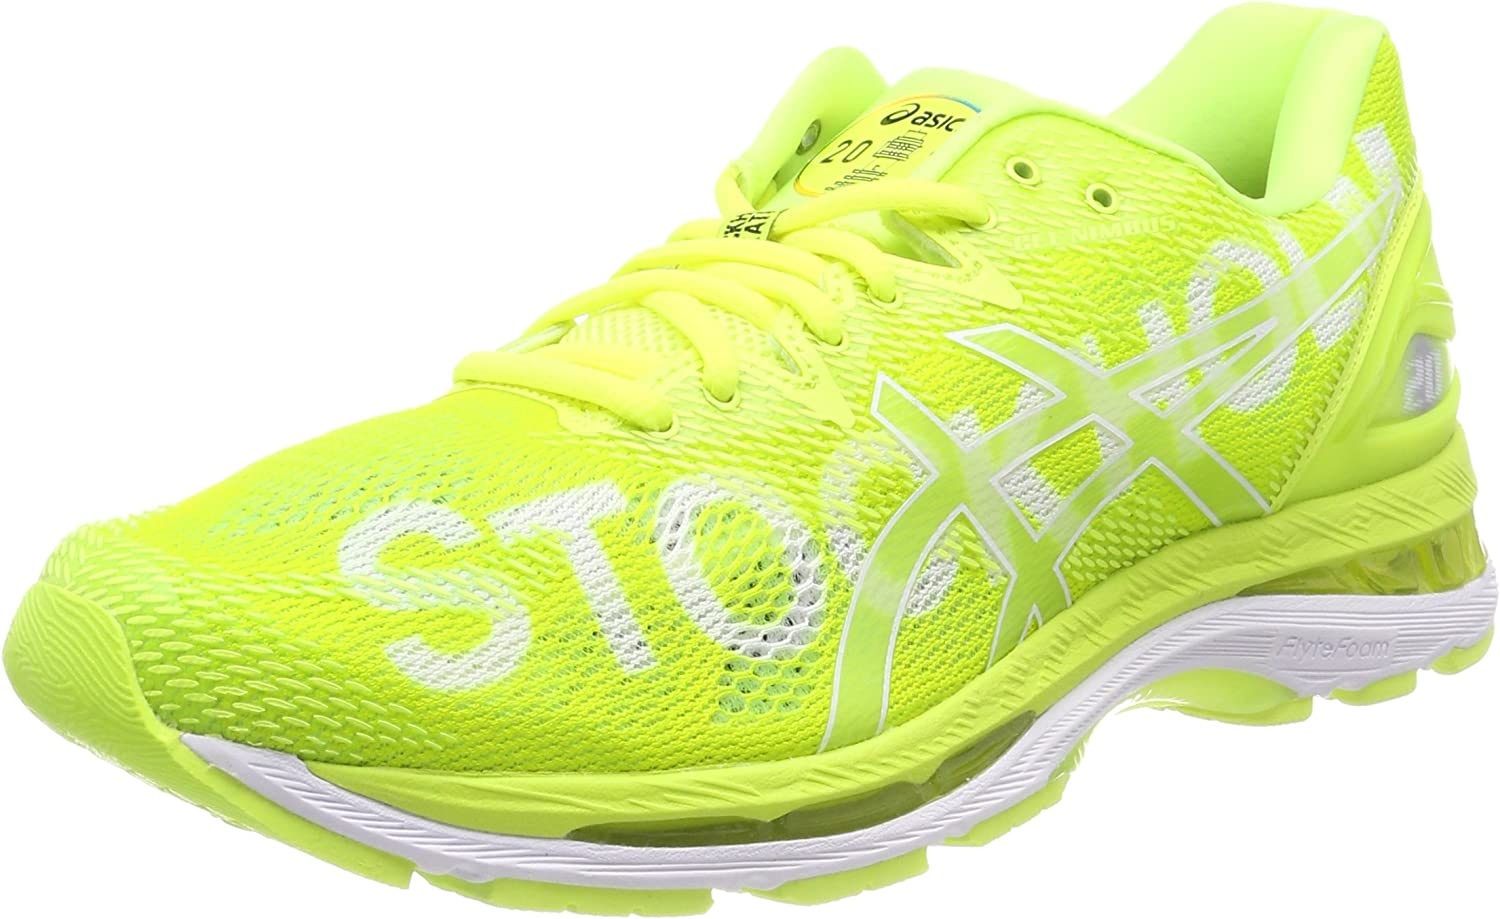 Asics Gel-Nimbus 20 Stockholm, Zapatillas de Running para Mujer, Amarillo (Safety Yellow/Safety Yellow/White 0707), 44 EU: Amazon.es: Zapatos y complementos